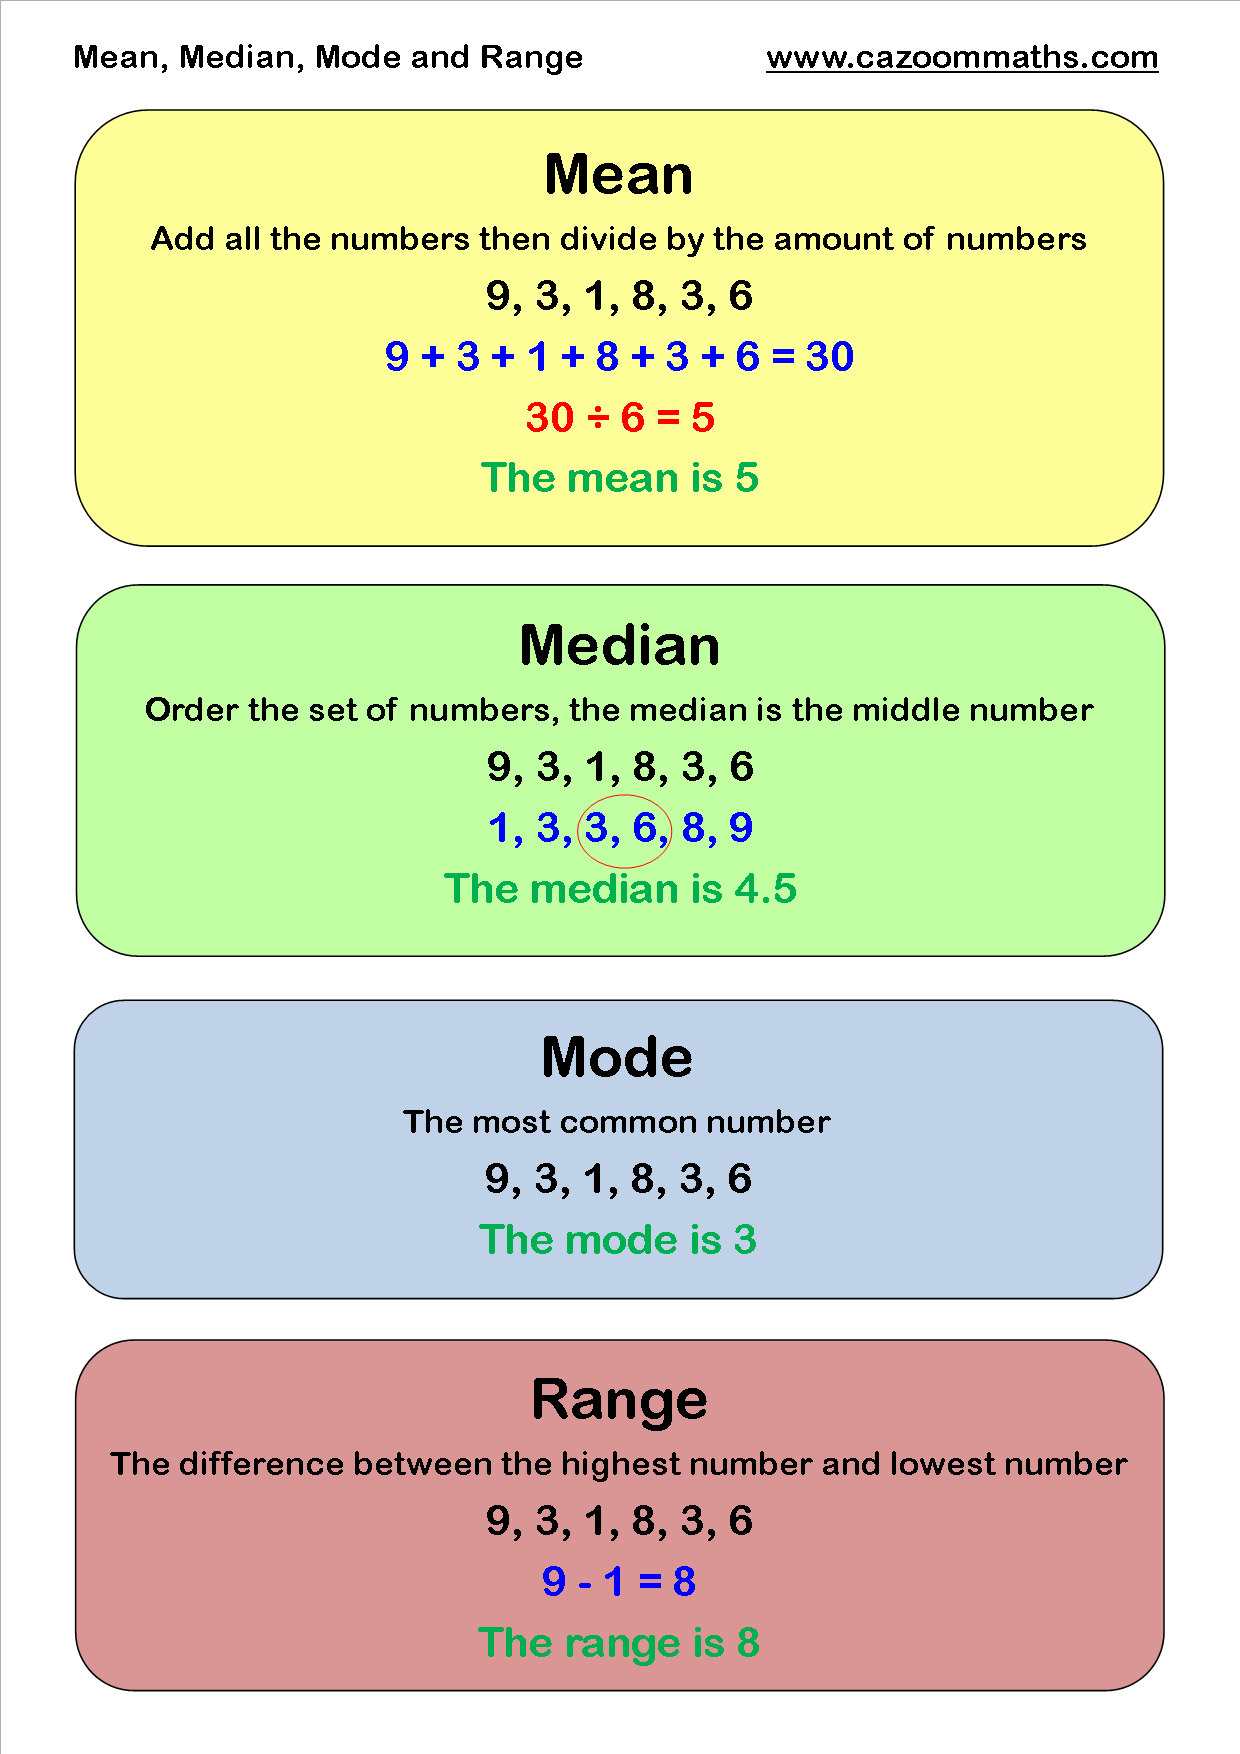 worksheet Define Range In Math the math dude remember this esl and ranges mean median mode range